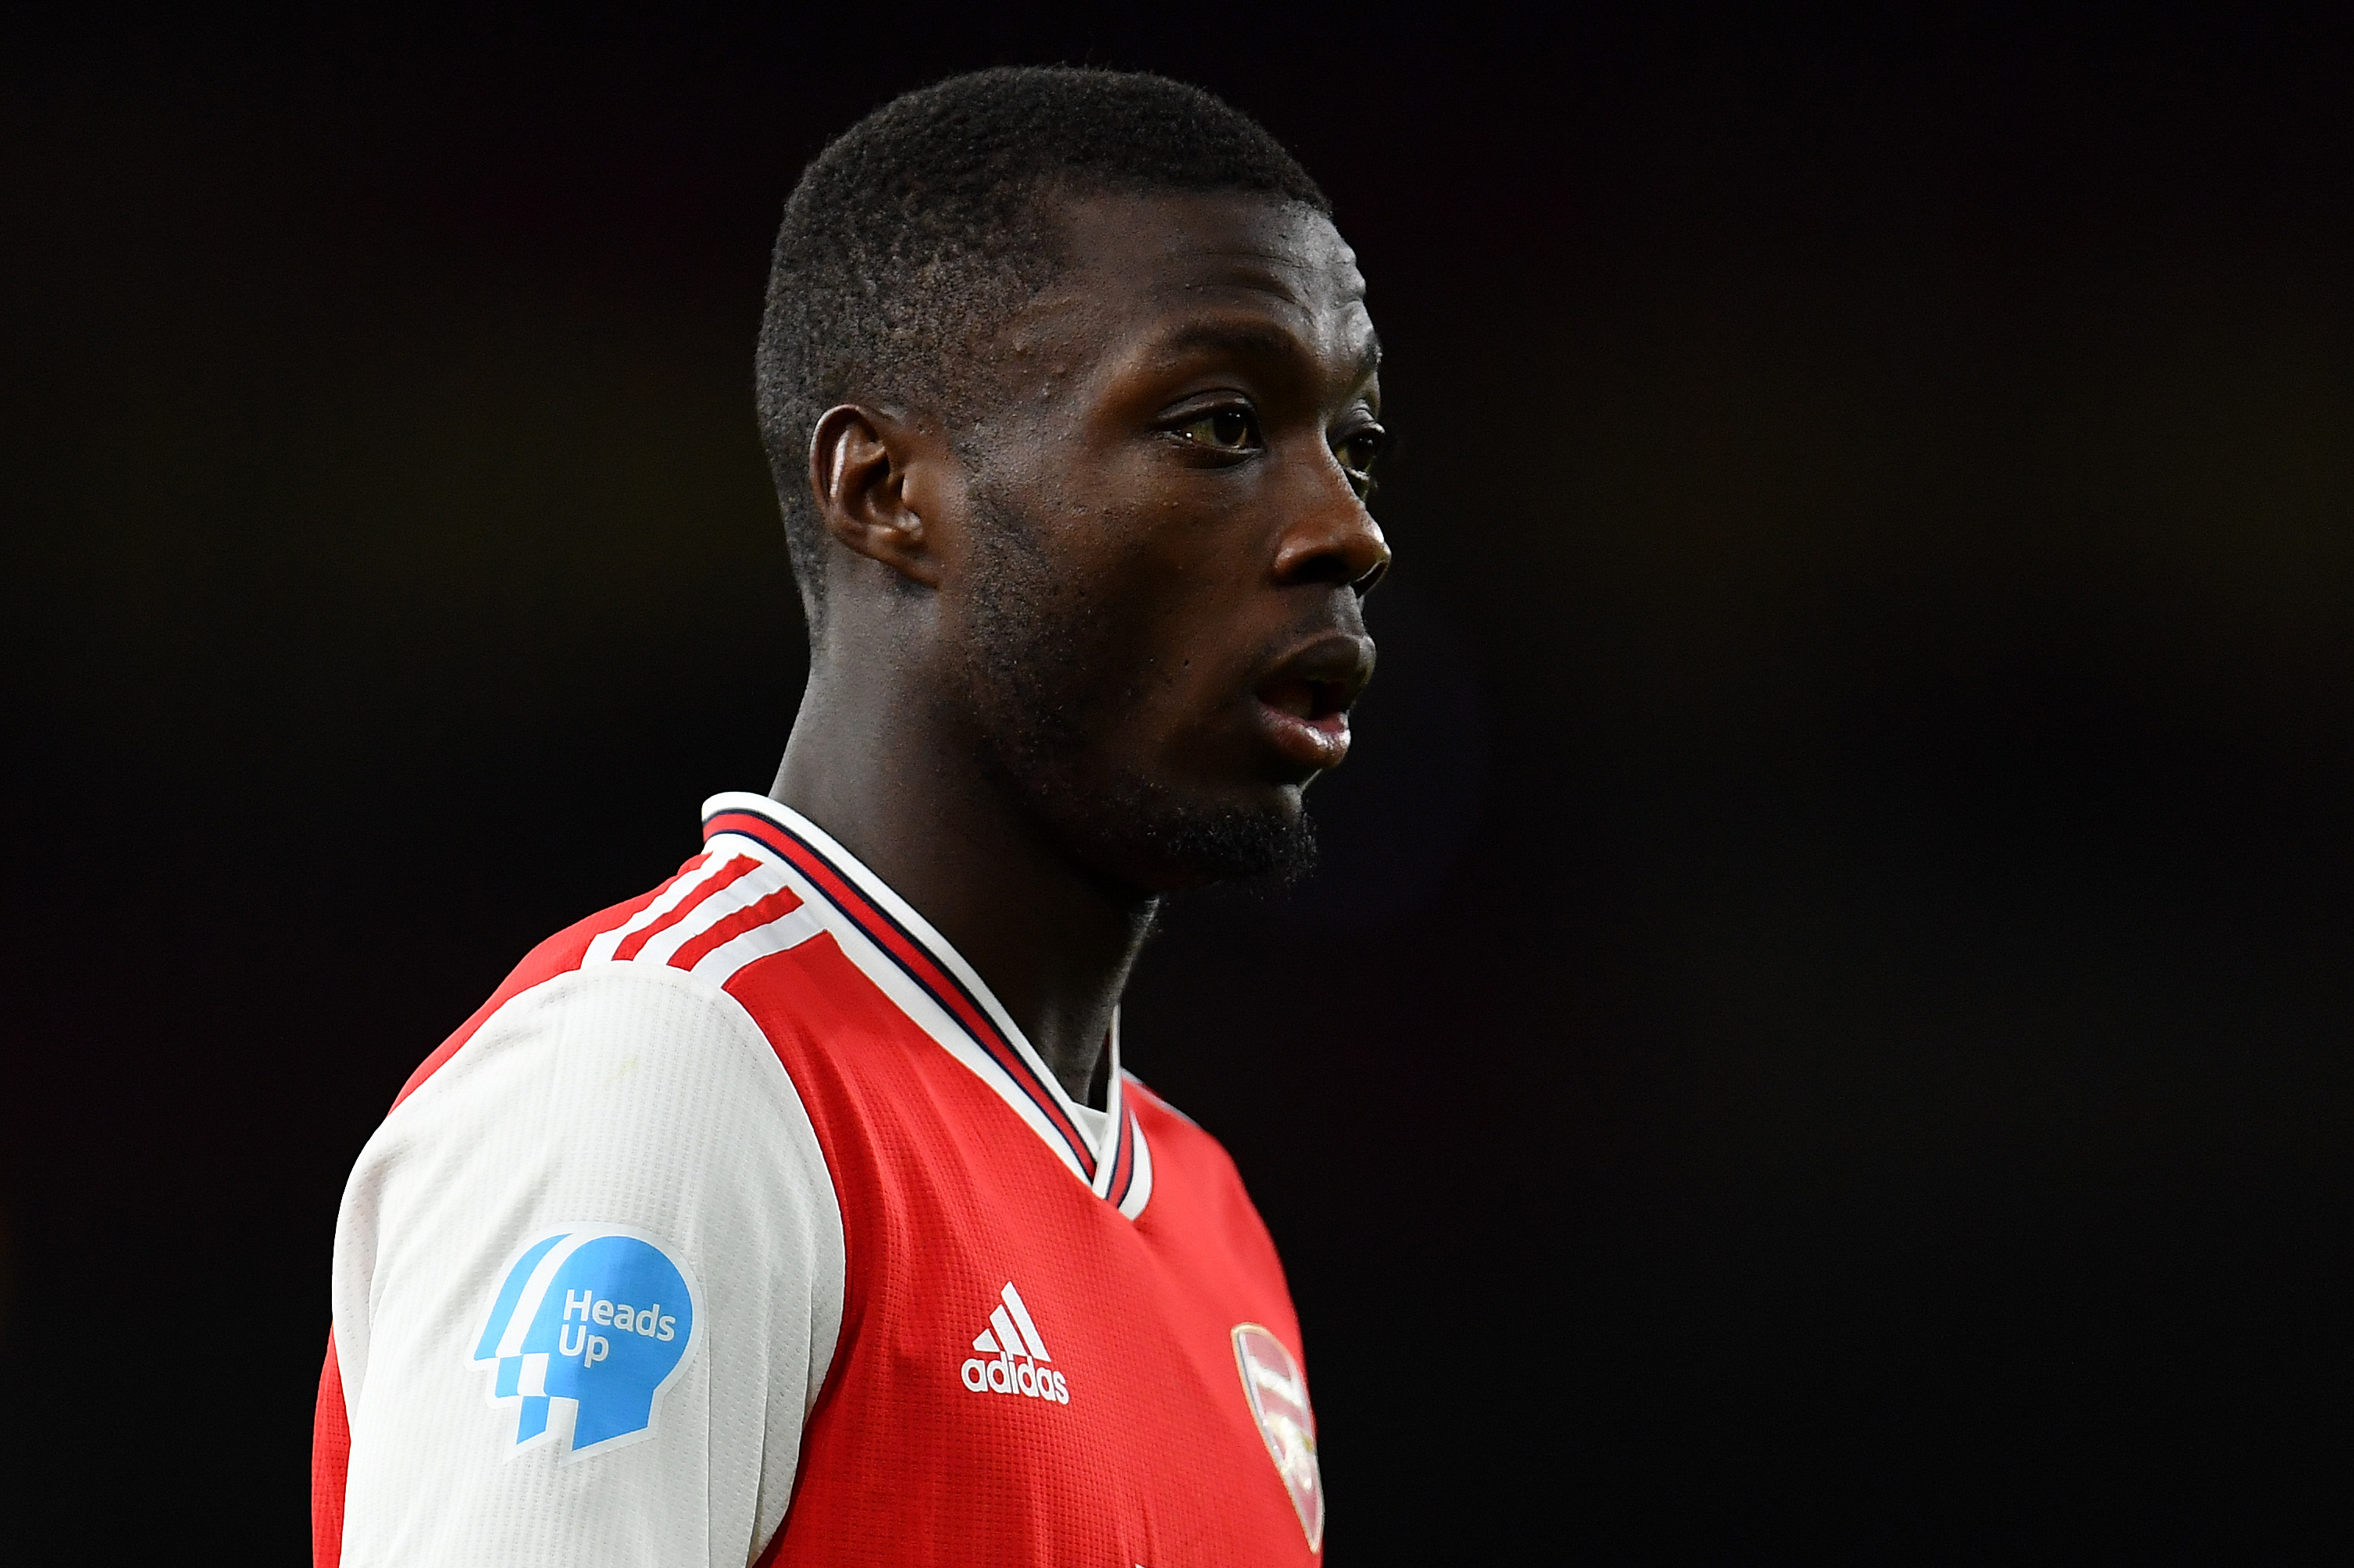 Predicted Arsenal Lineup Vs Leicester City - Nicolas Pepe is expected to start.